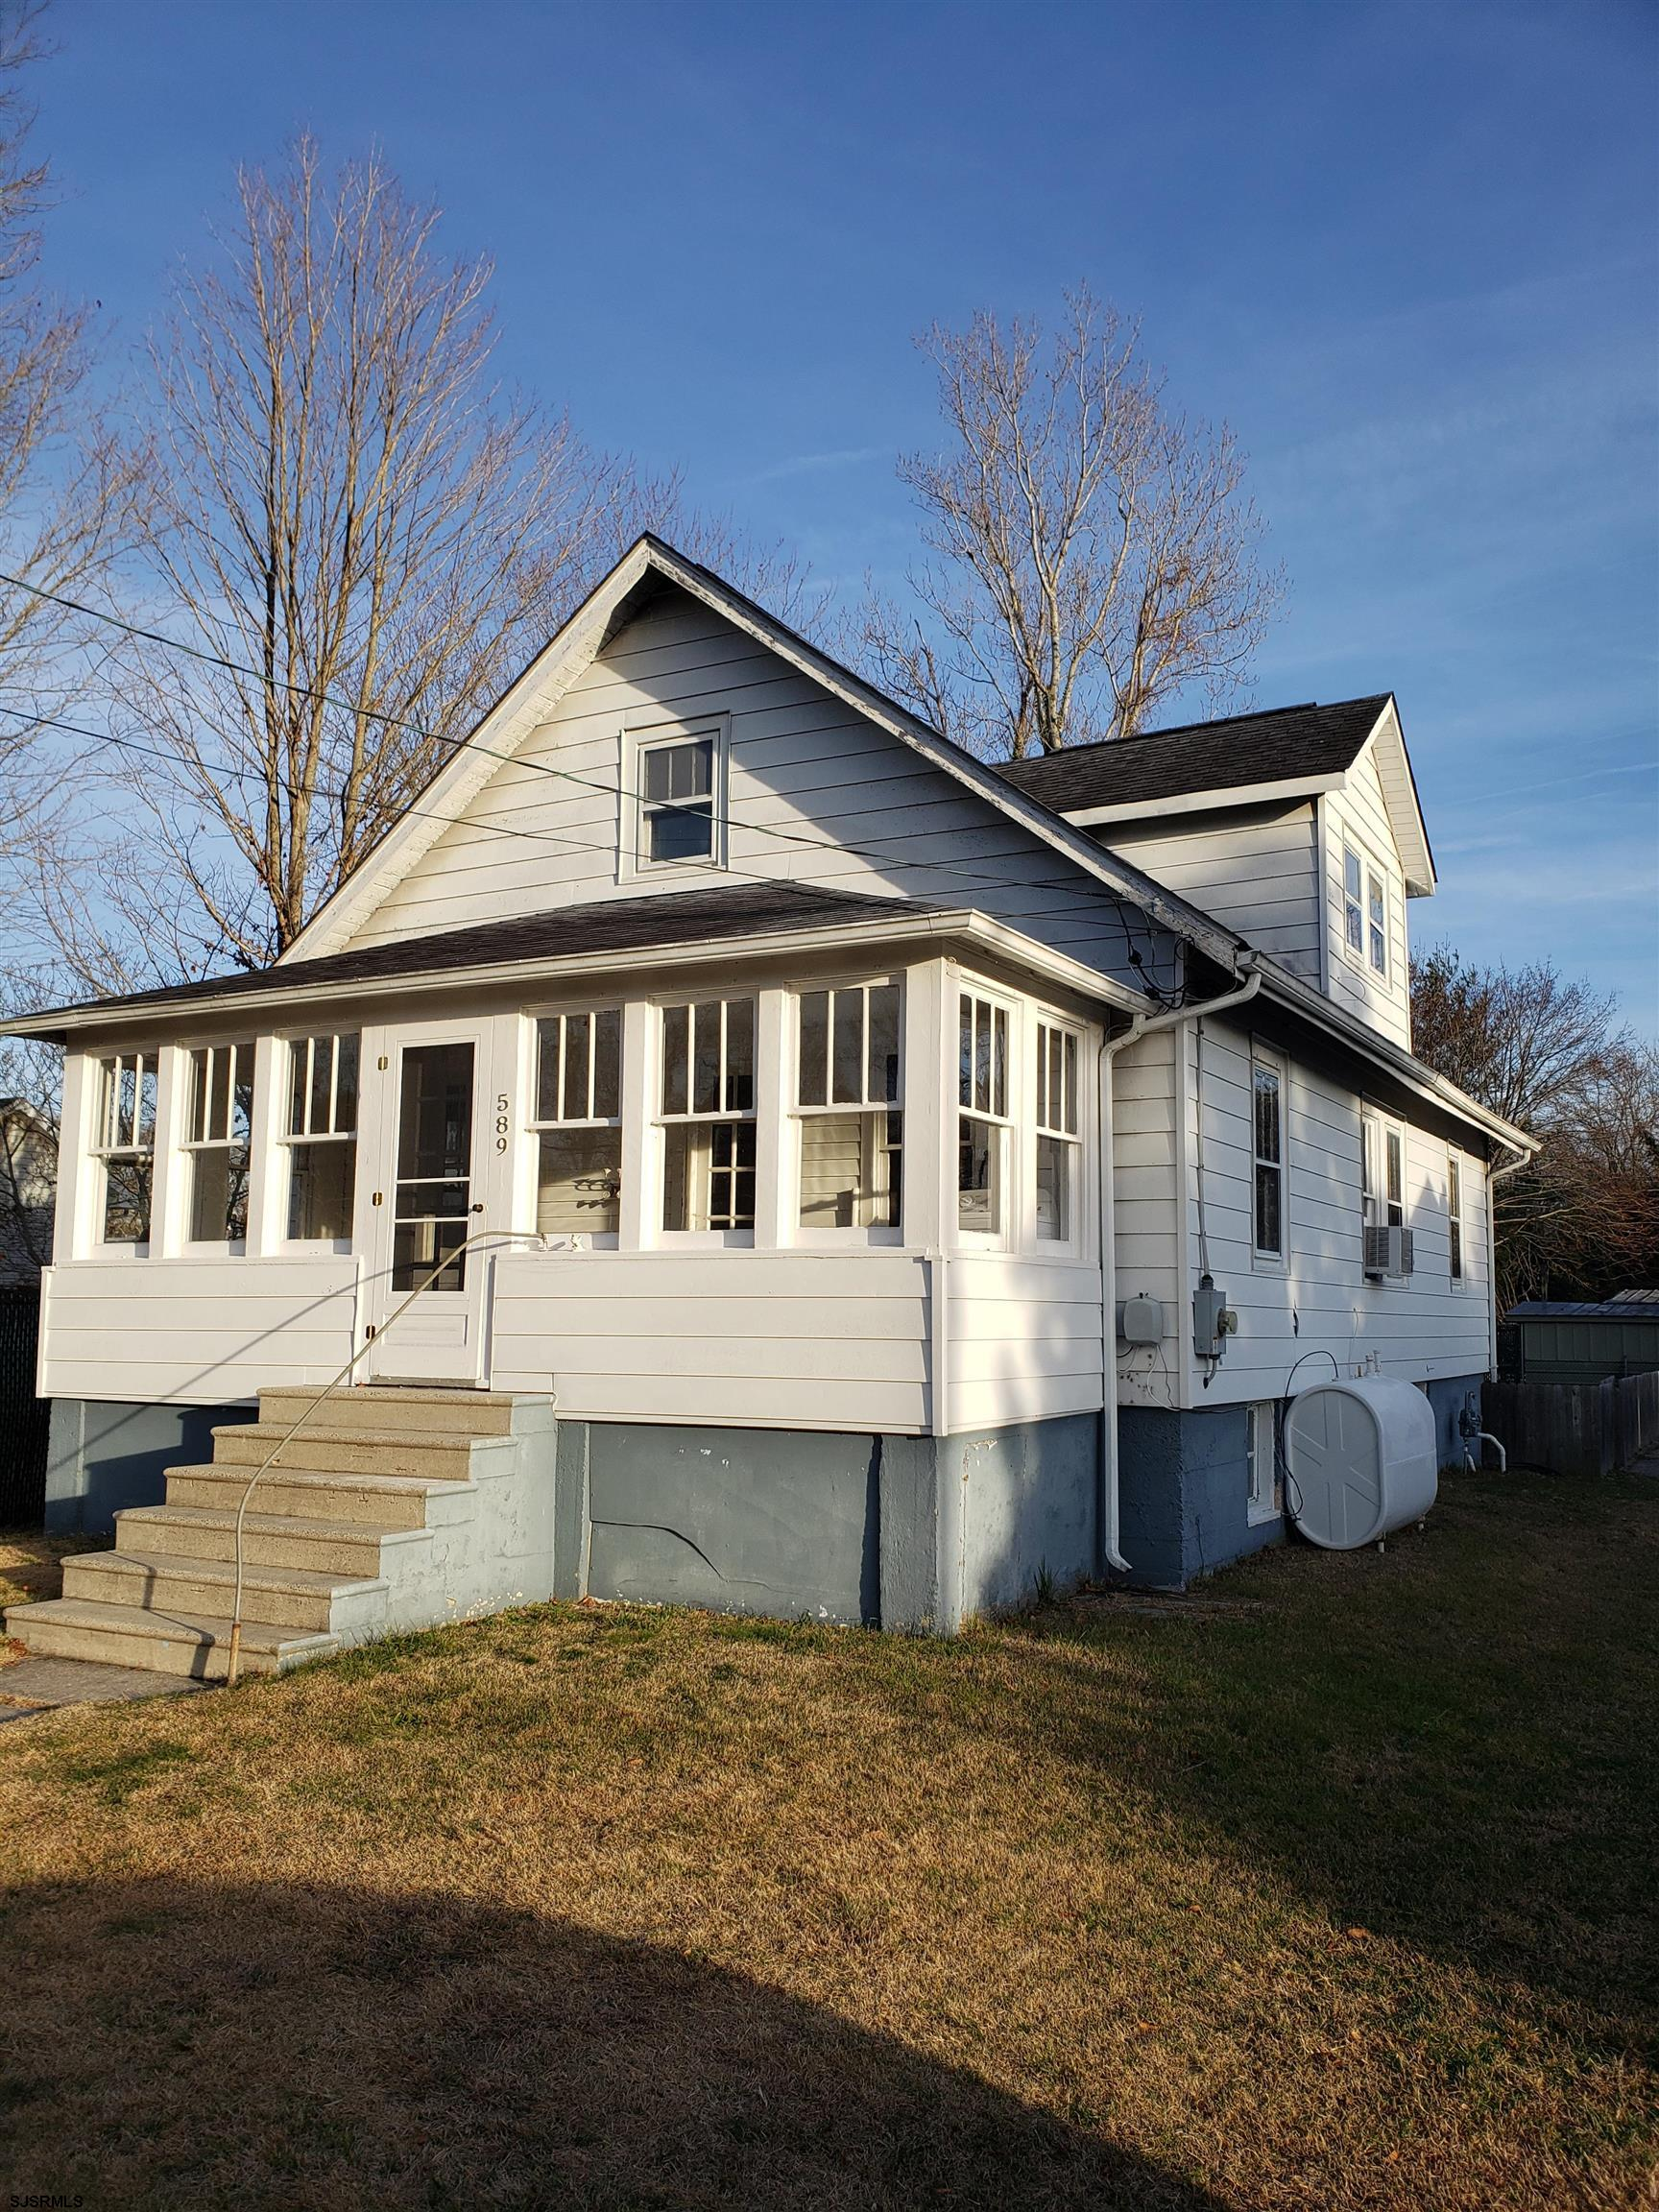 589 Route 9, Cape May, NJ 08204